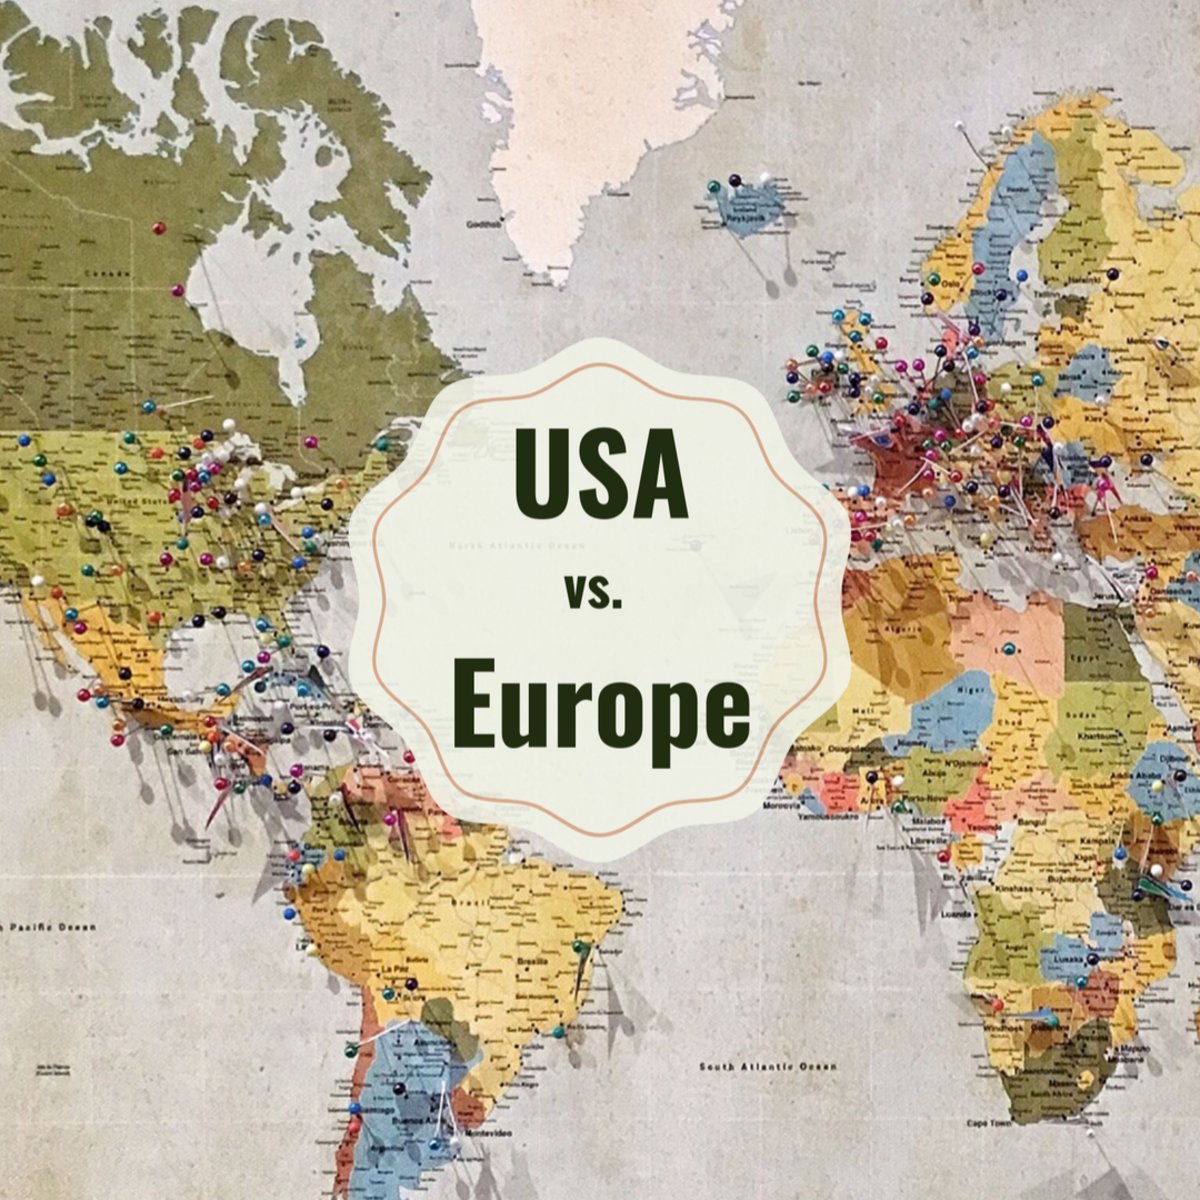 From portions to exercise habits, there are some major differences between Europe and the USA.